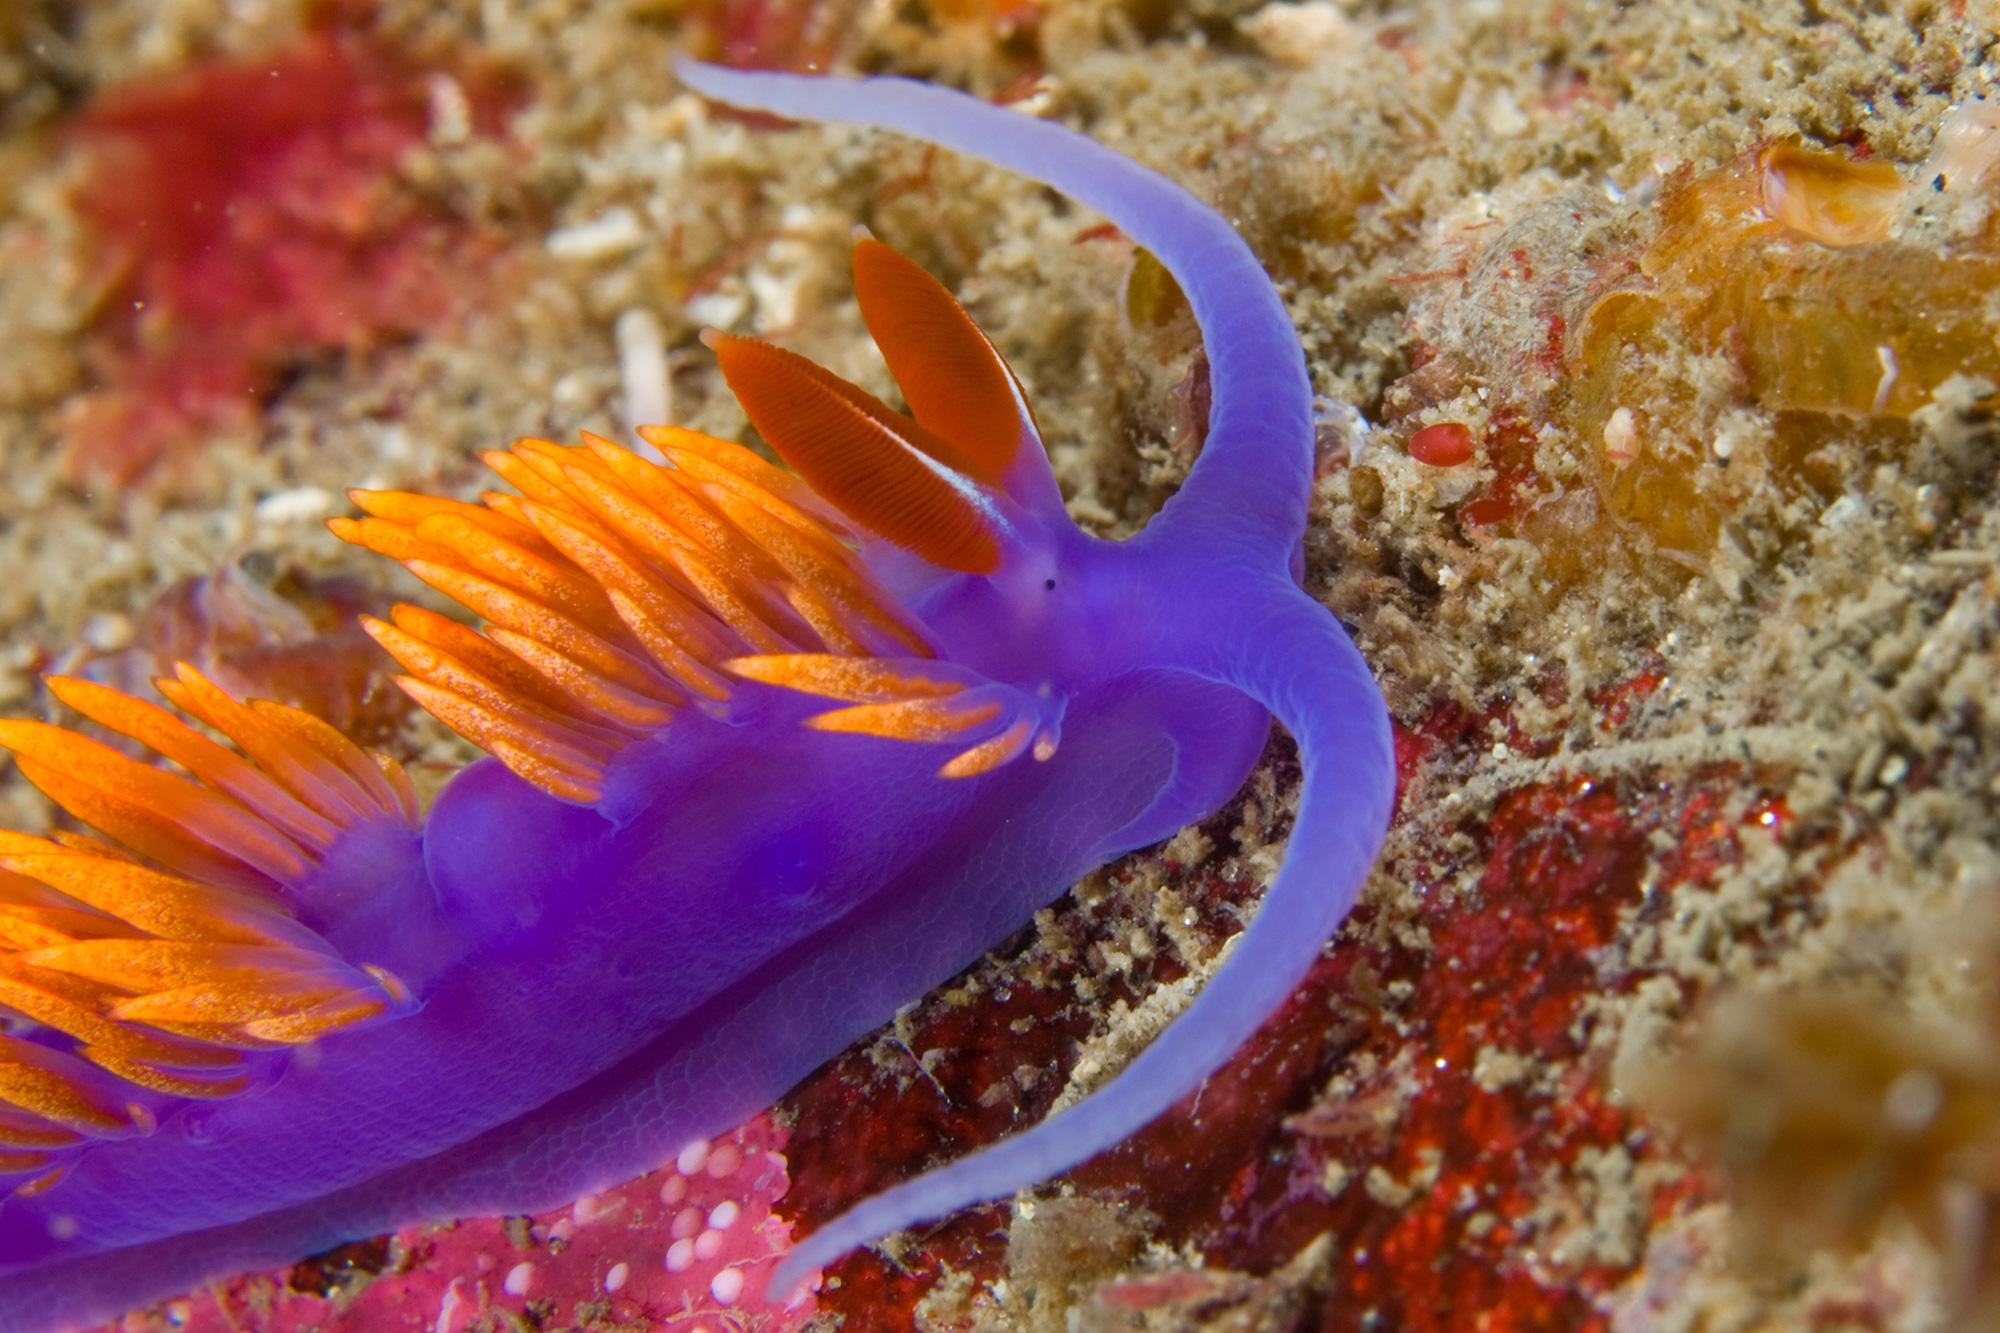 Unlike many of their land-dwelling kin, many so-called sea slugs such as this Spanish Shawl are carnivorous snails that prey on polyps, sponges or even each other.